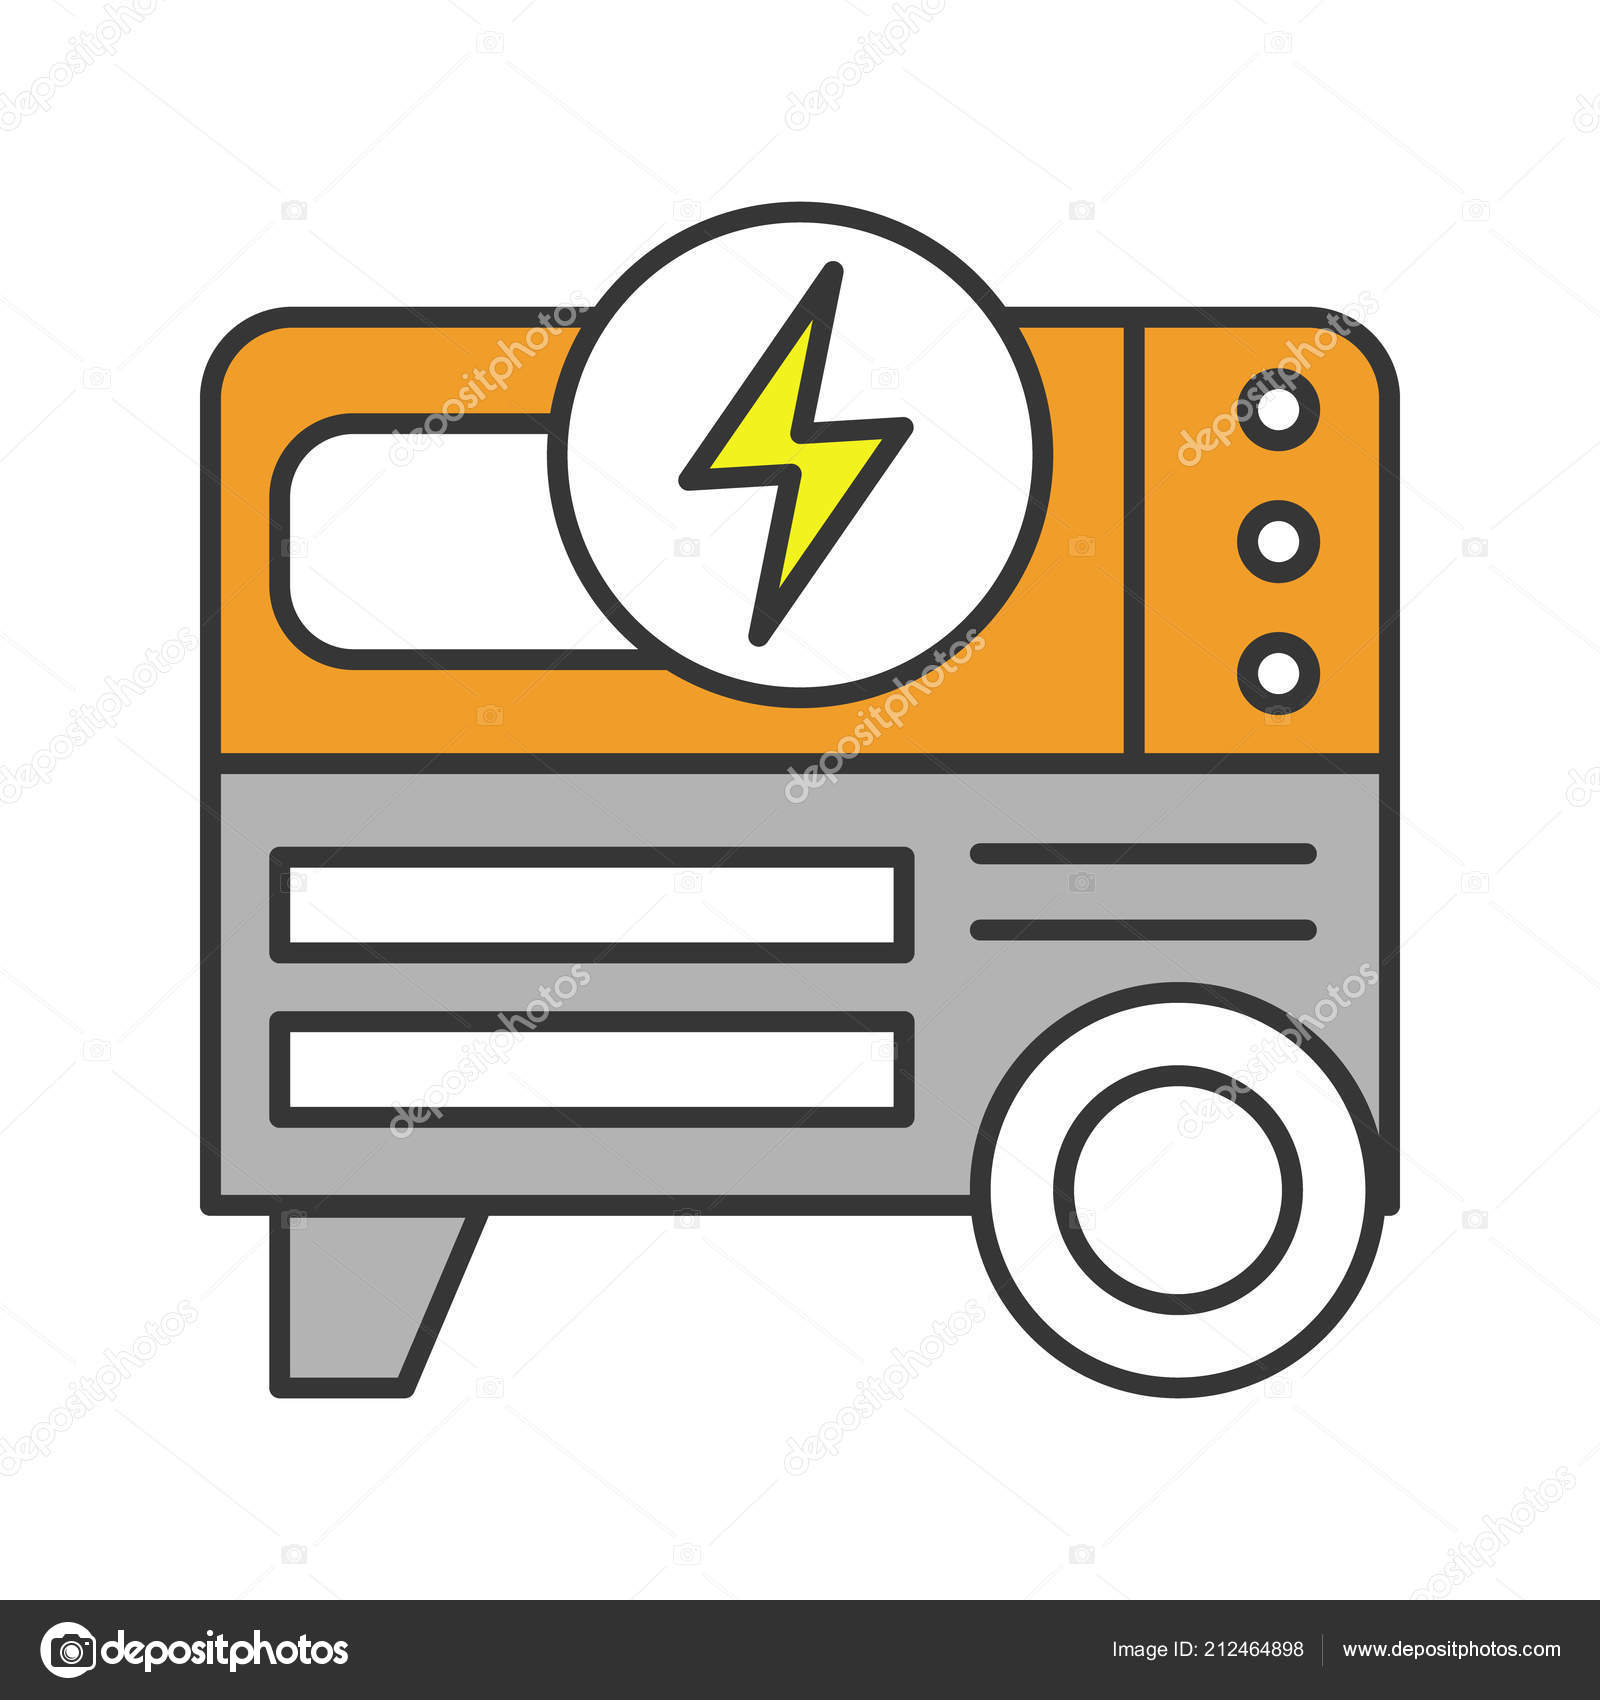 Power generator icon Clipart Png Portable Power Generator Color Icon Stock Vector Depositphotos Portable Power Generator Color Icon Stock Vector Bsd 212464898